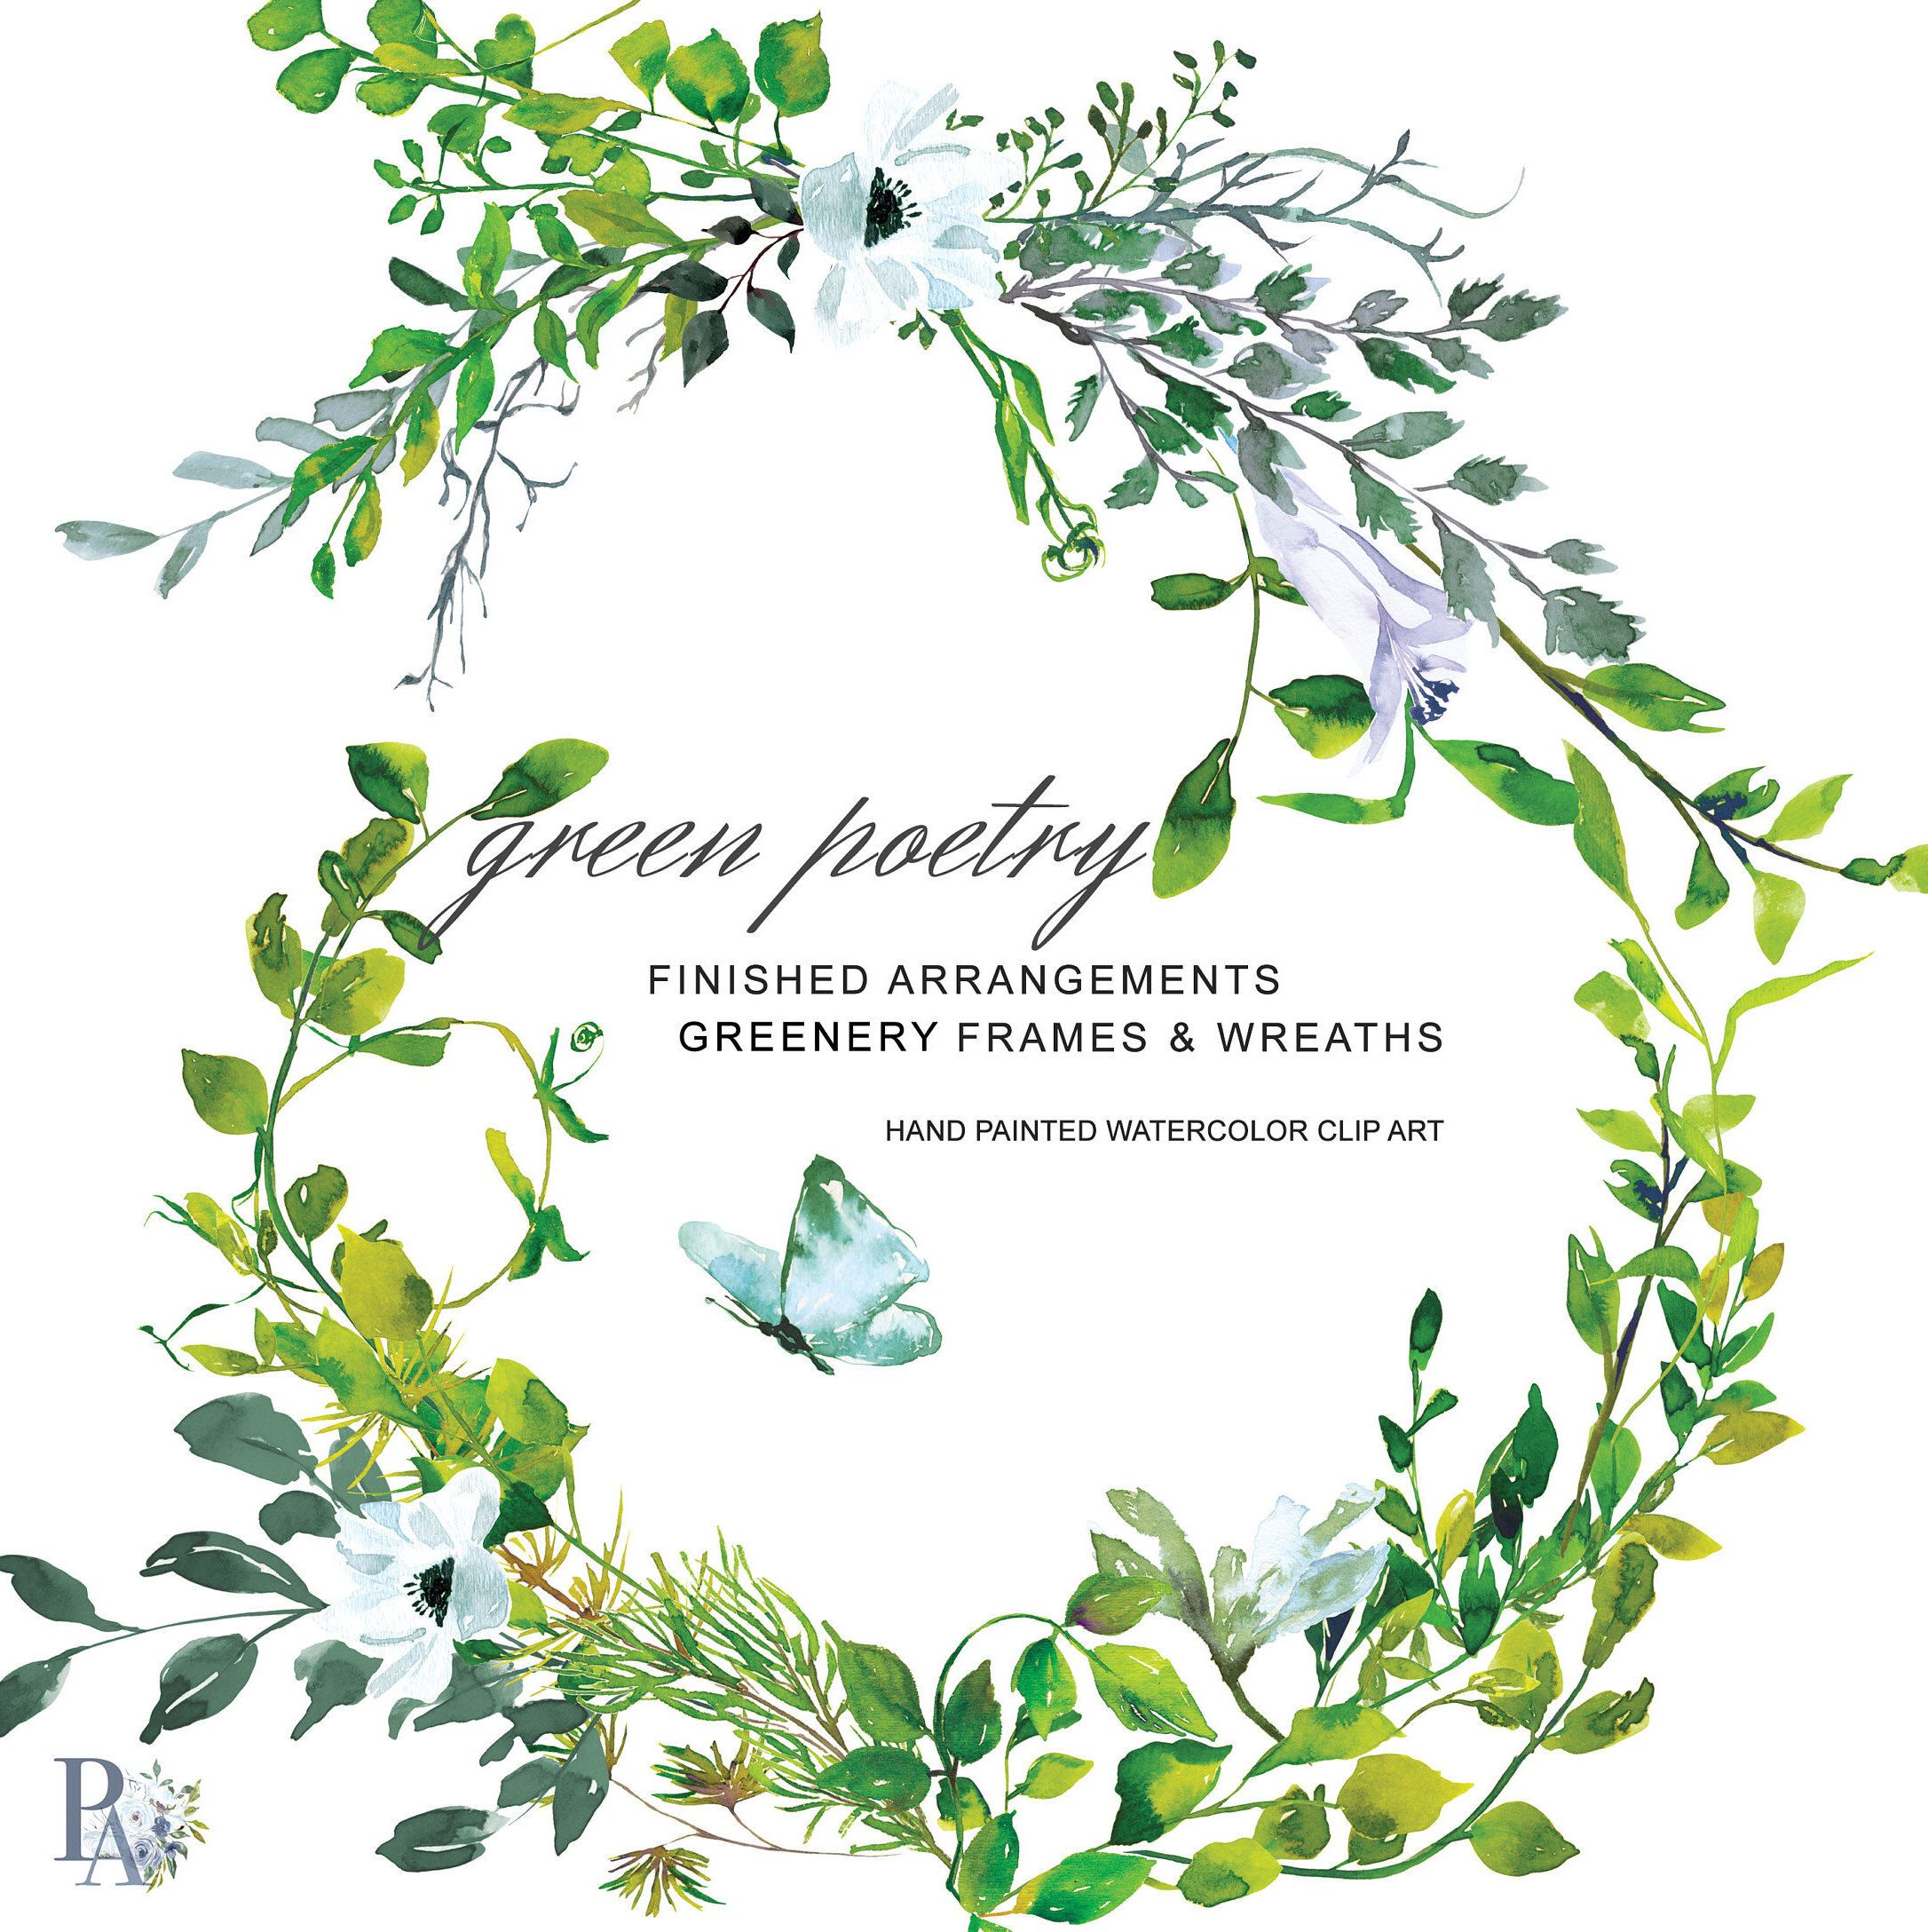 5fe45ed1e81b Hand Painted Watercolor Greenery Clipart Greenery Wreath Watercolor  Greenery Frame Greenery Arrangements Commercial Use